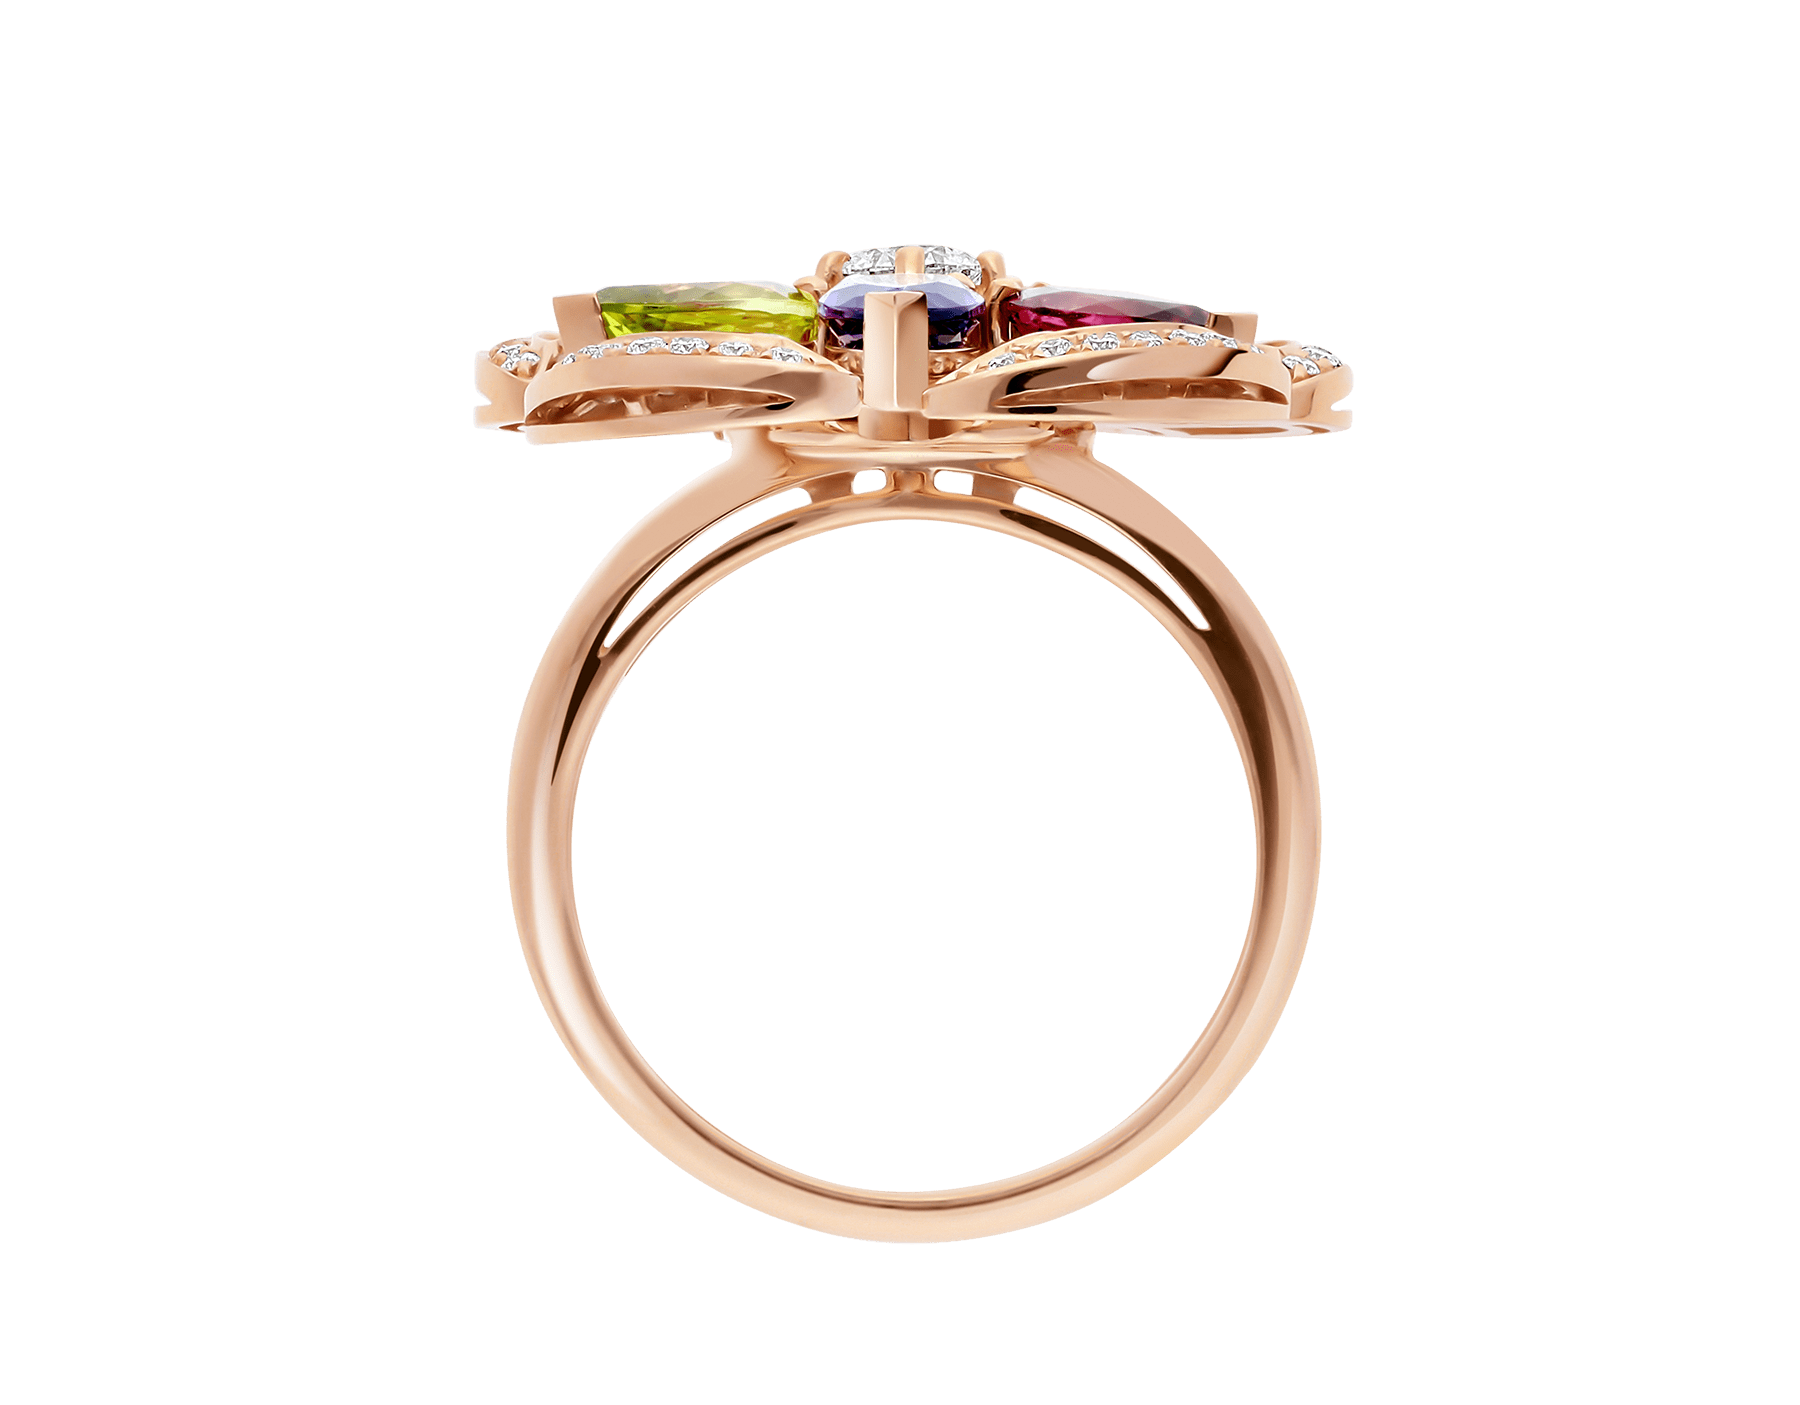 DIVAS' DREAM 18 kt rose gold ring set with coloured gemstones, a brilliant-cut diamond and pavé diamonds AN858421 image 2